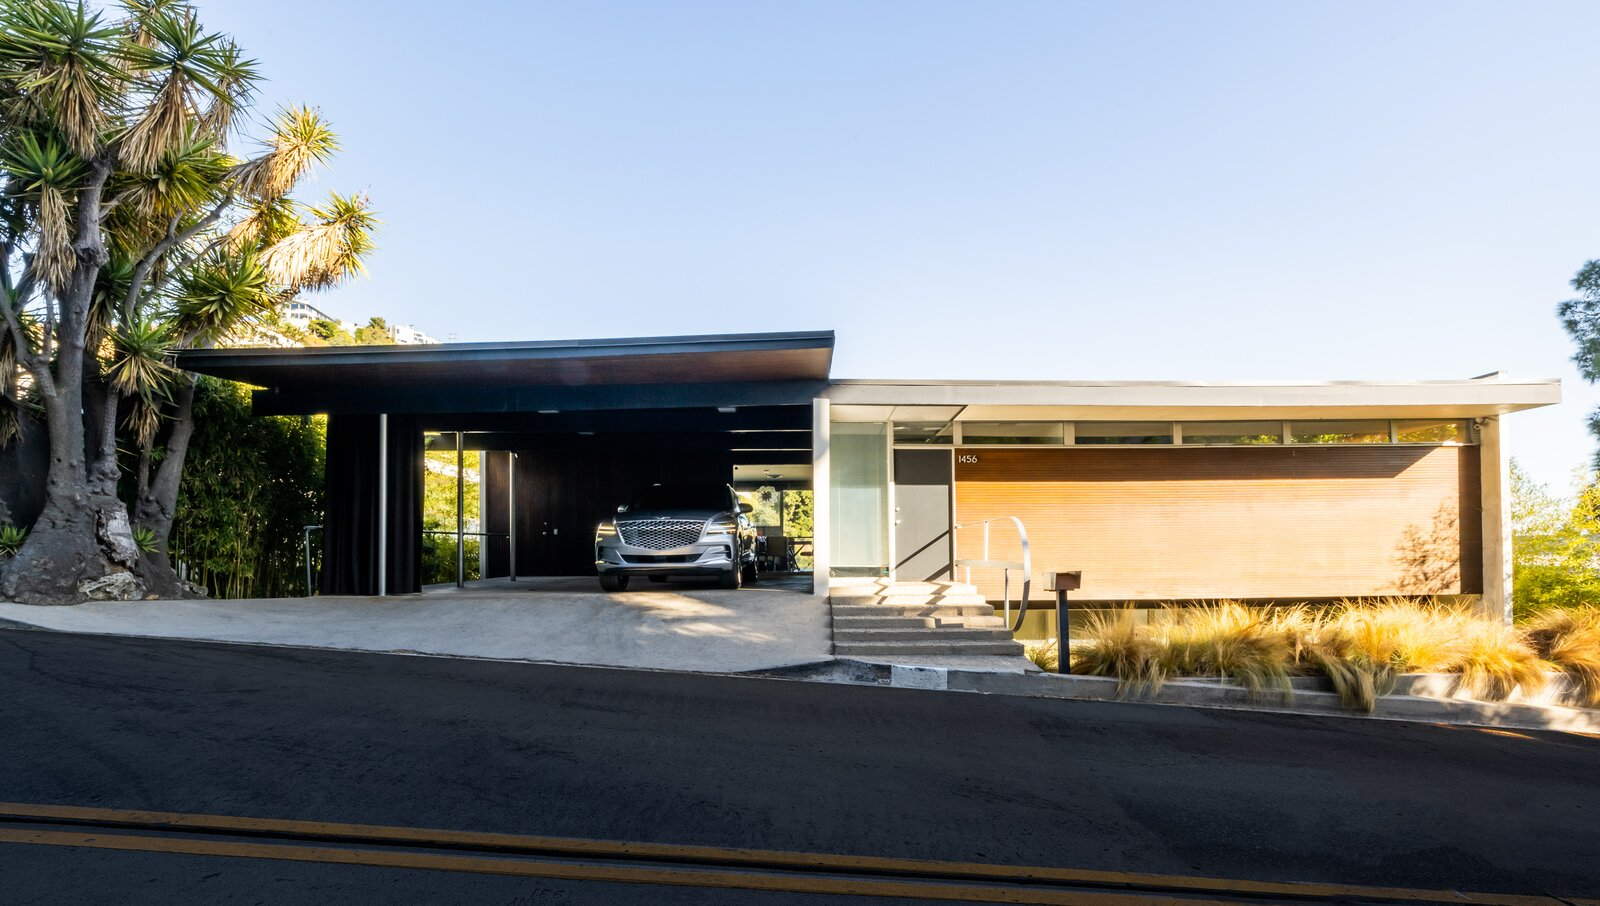 Exterior of Lew House by Richard Neutra